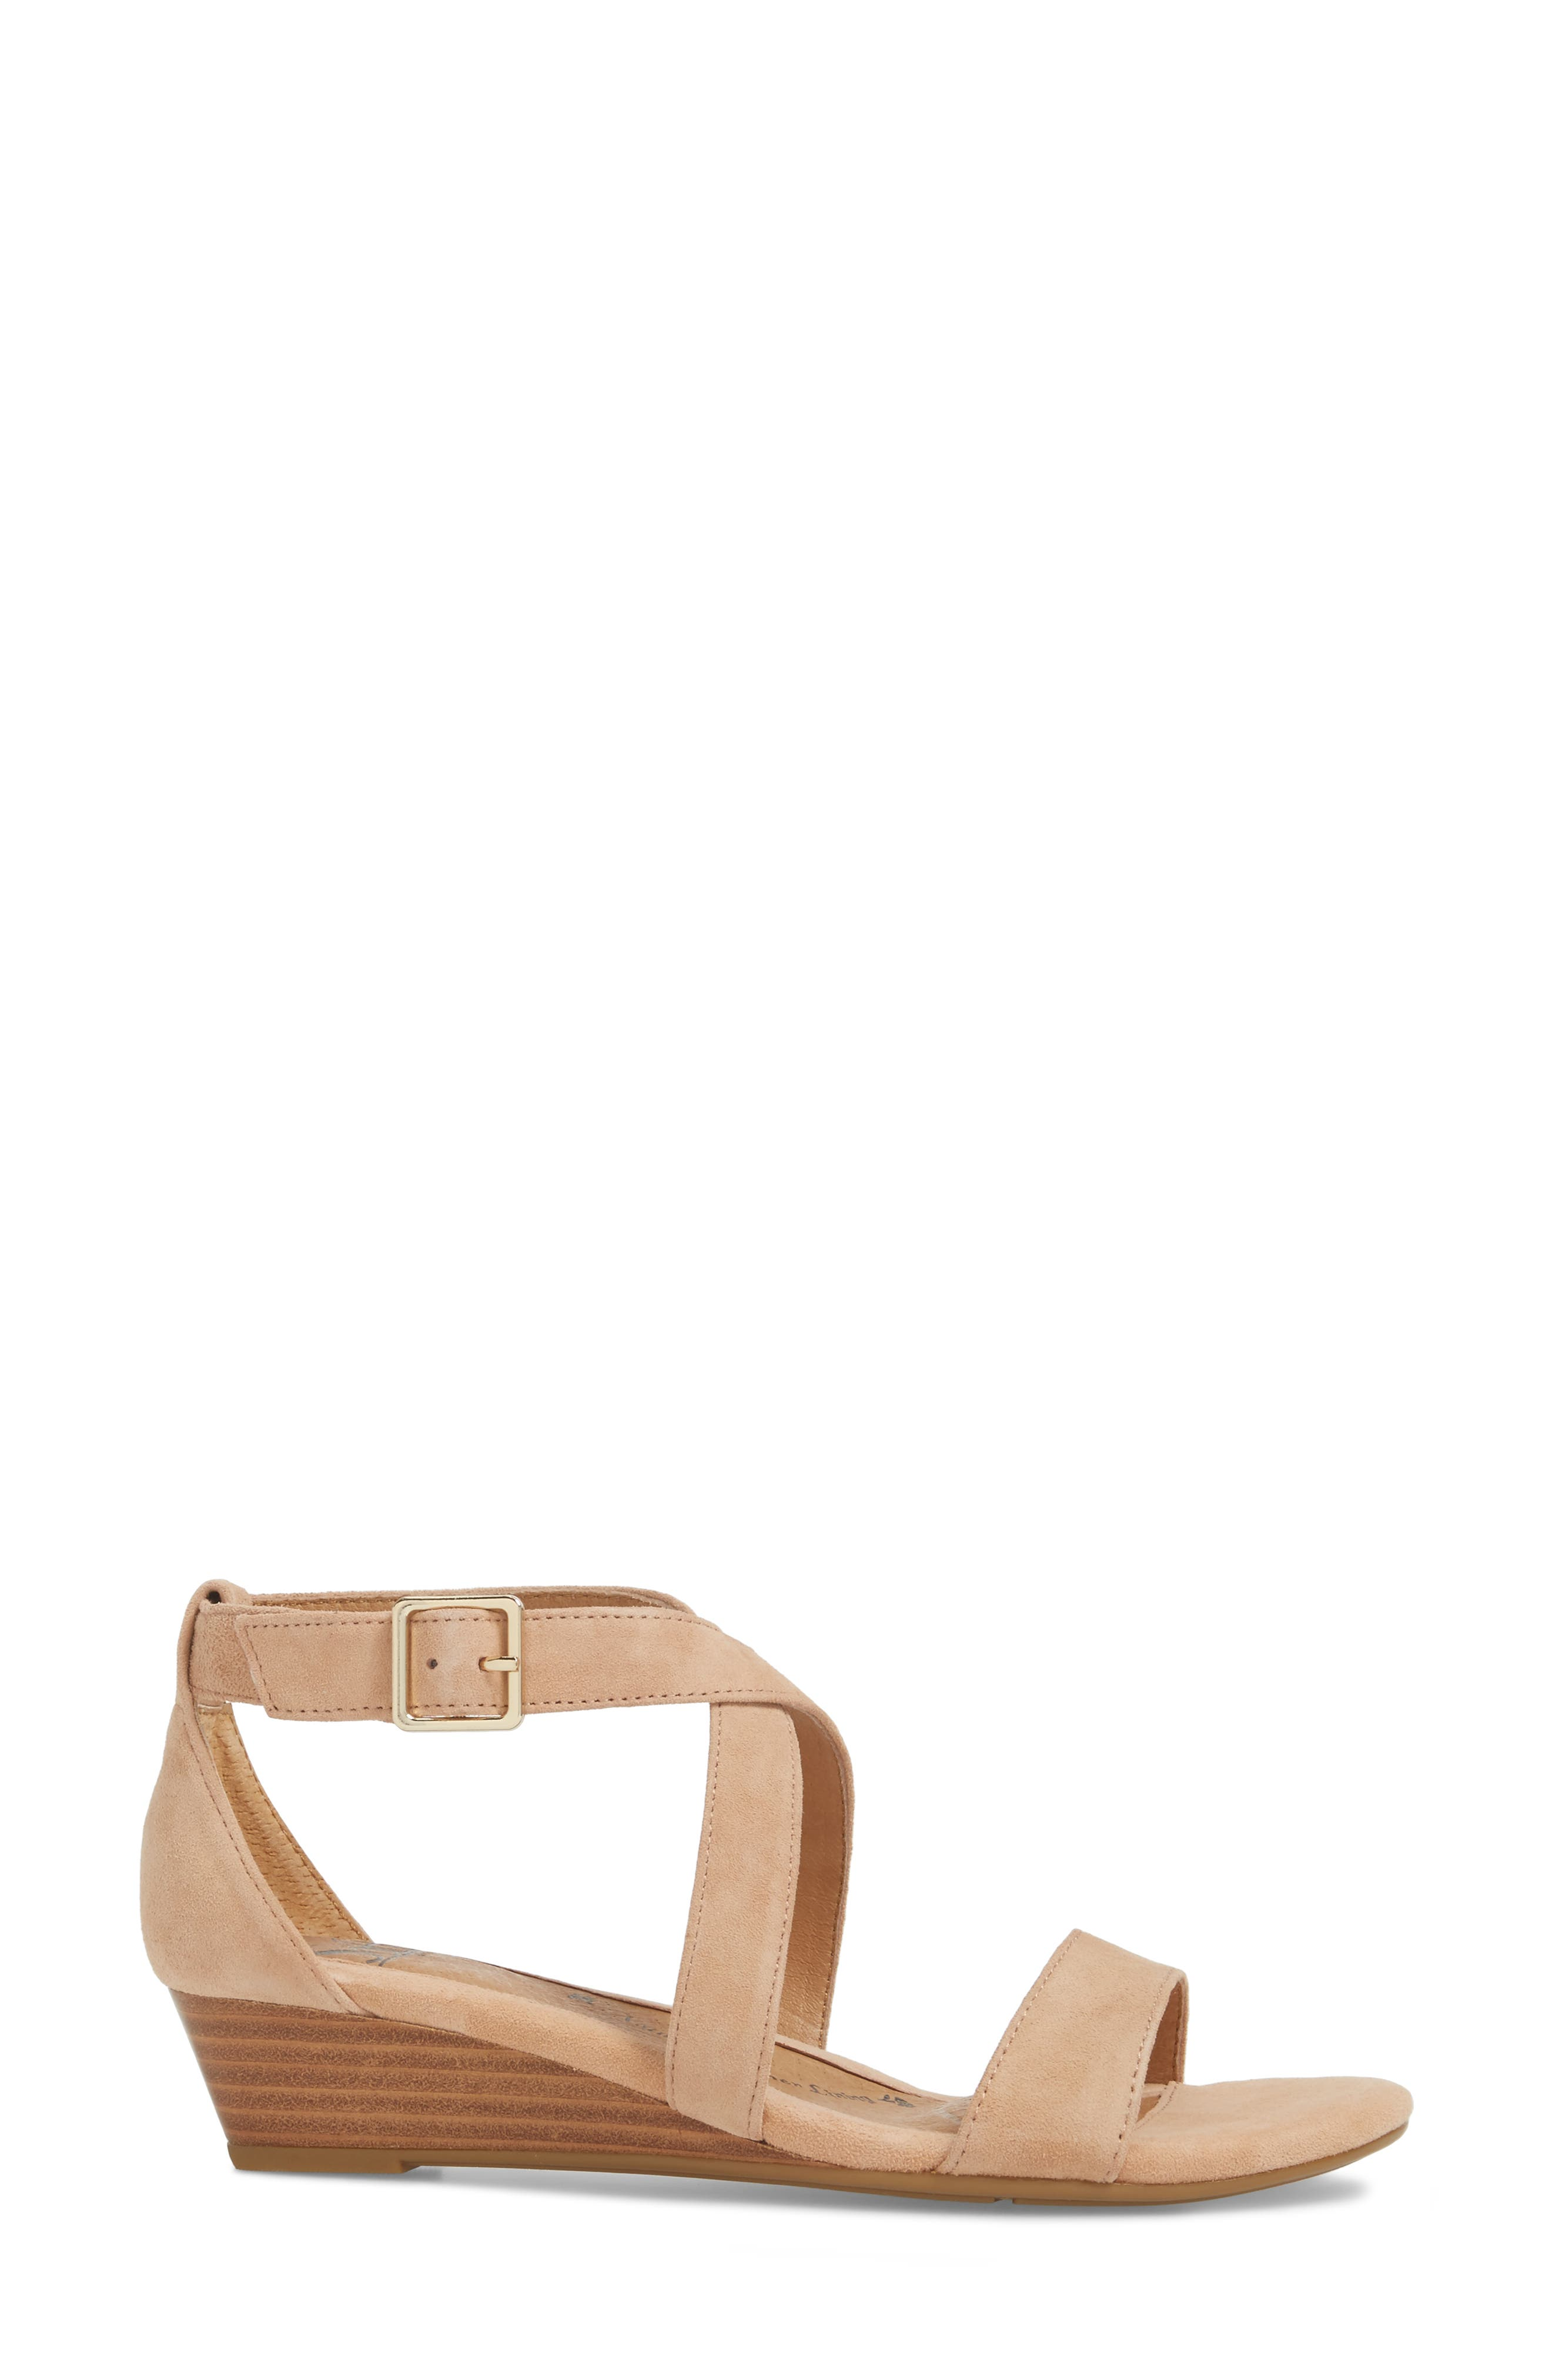 'Innis' Low Wedge Sandal,                             Alternate thumbnail 28, color,